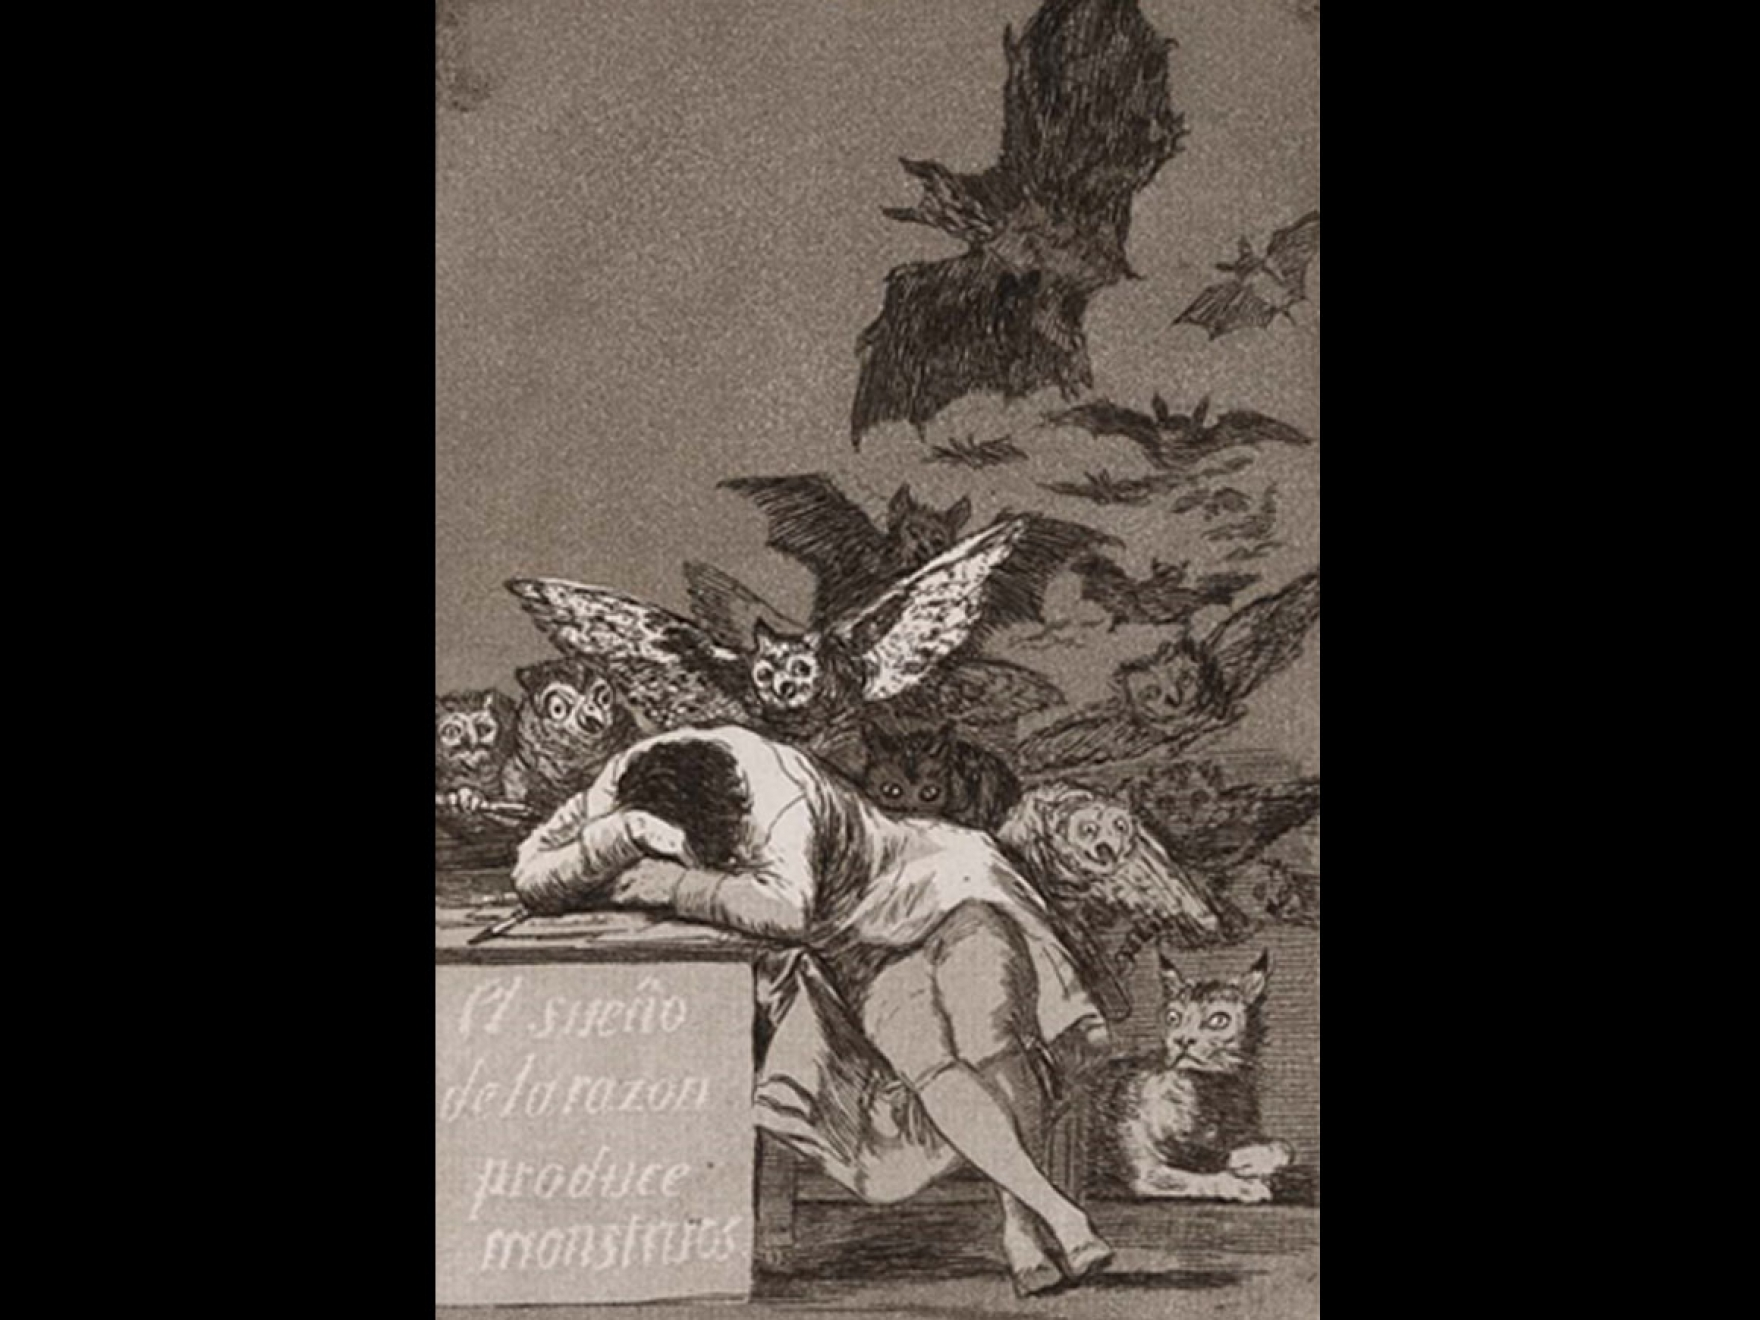 Drawing and etching in aquatint of a sleeping figure surrounded by figures of monsters